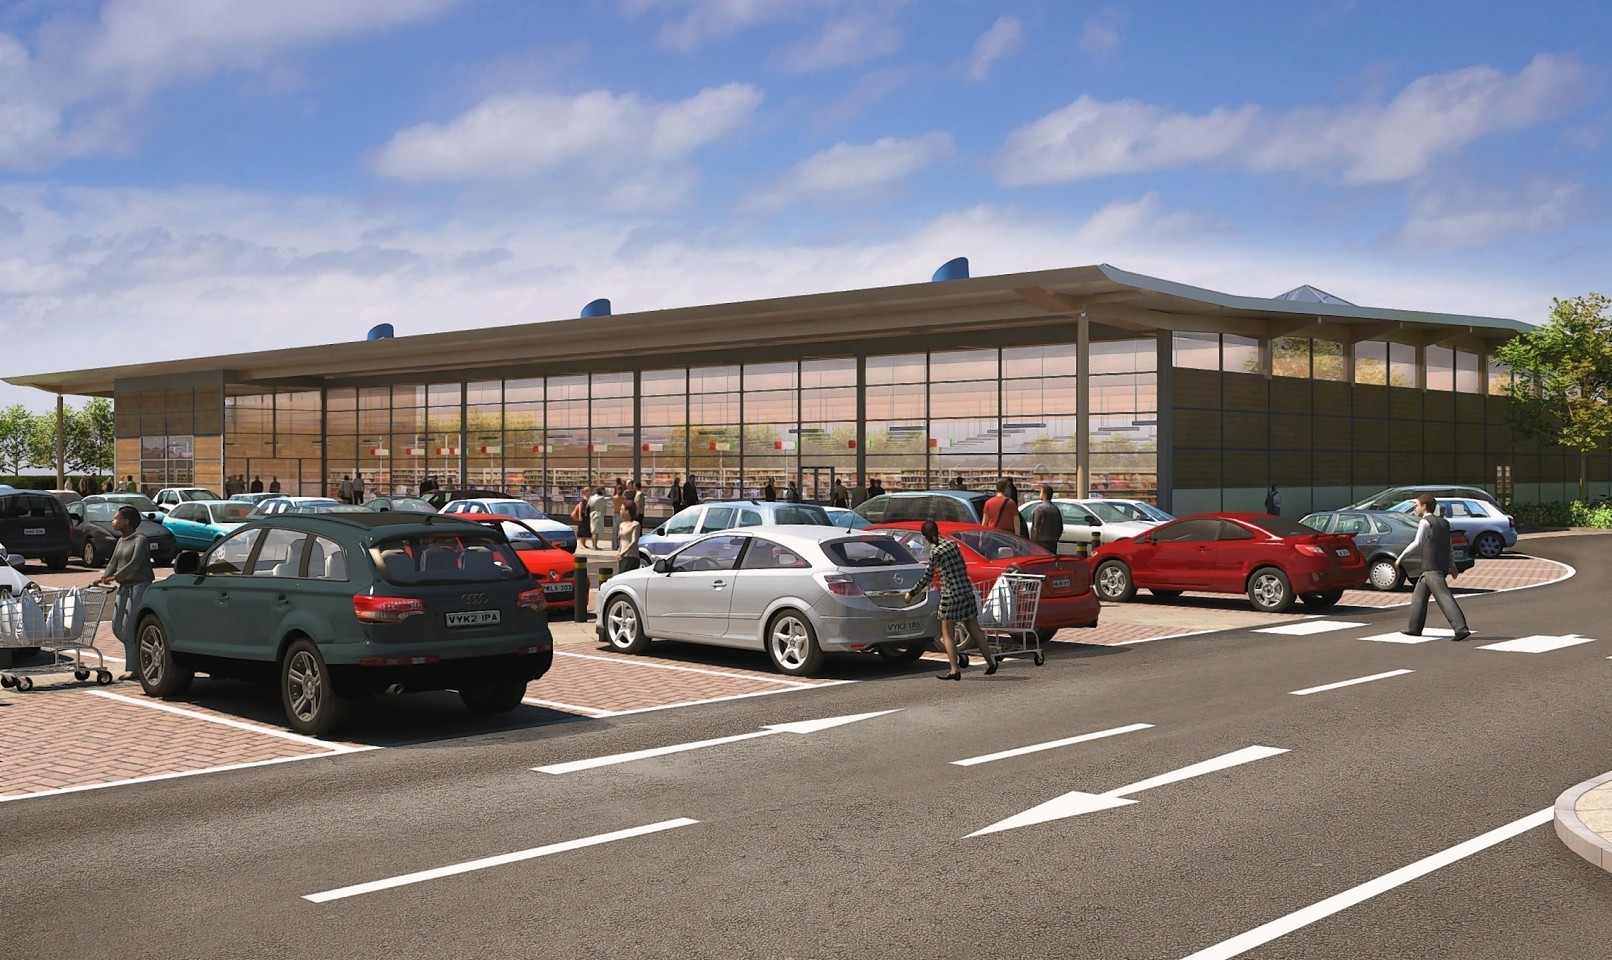 Previous artist's impression of a supermarket on Portree